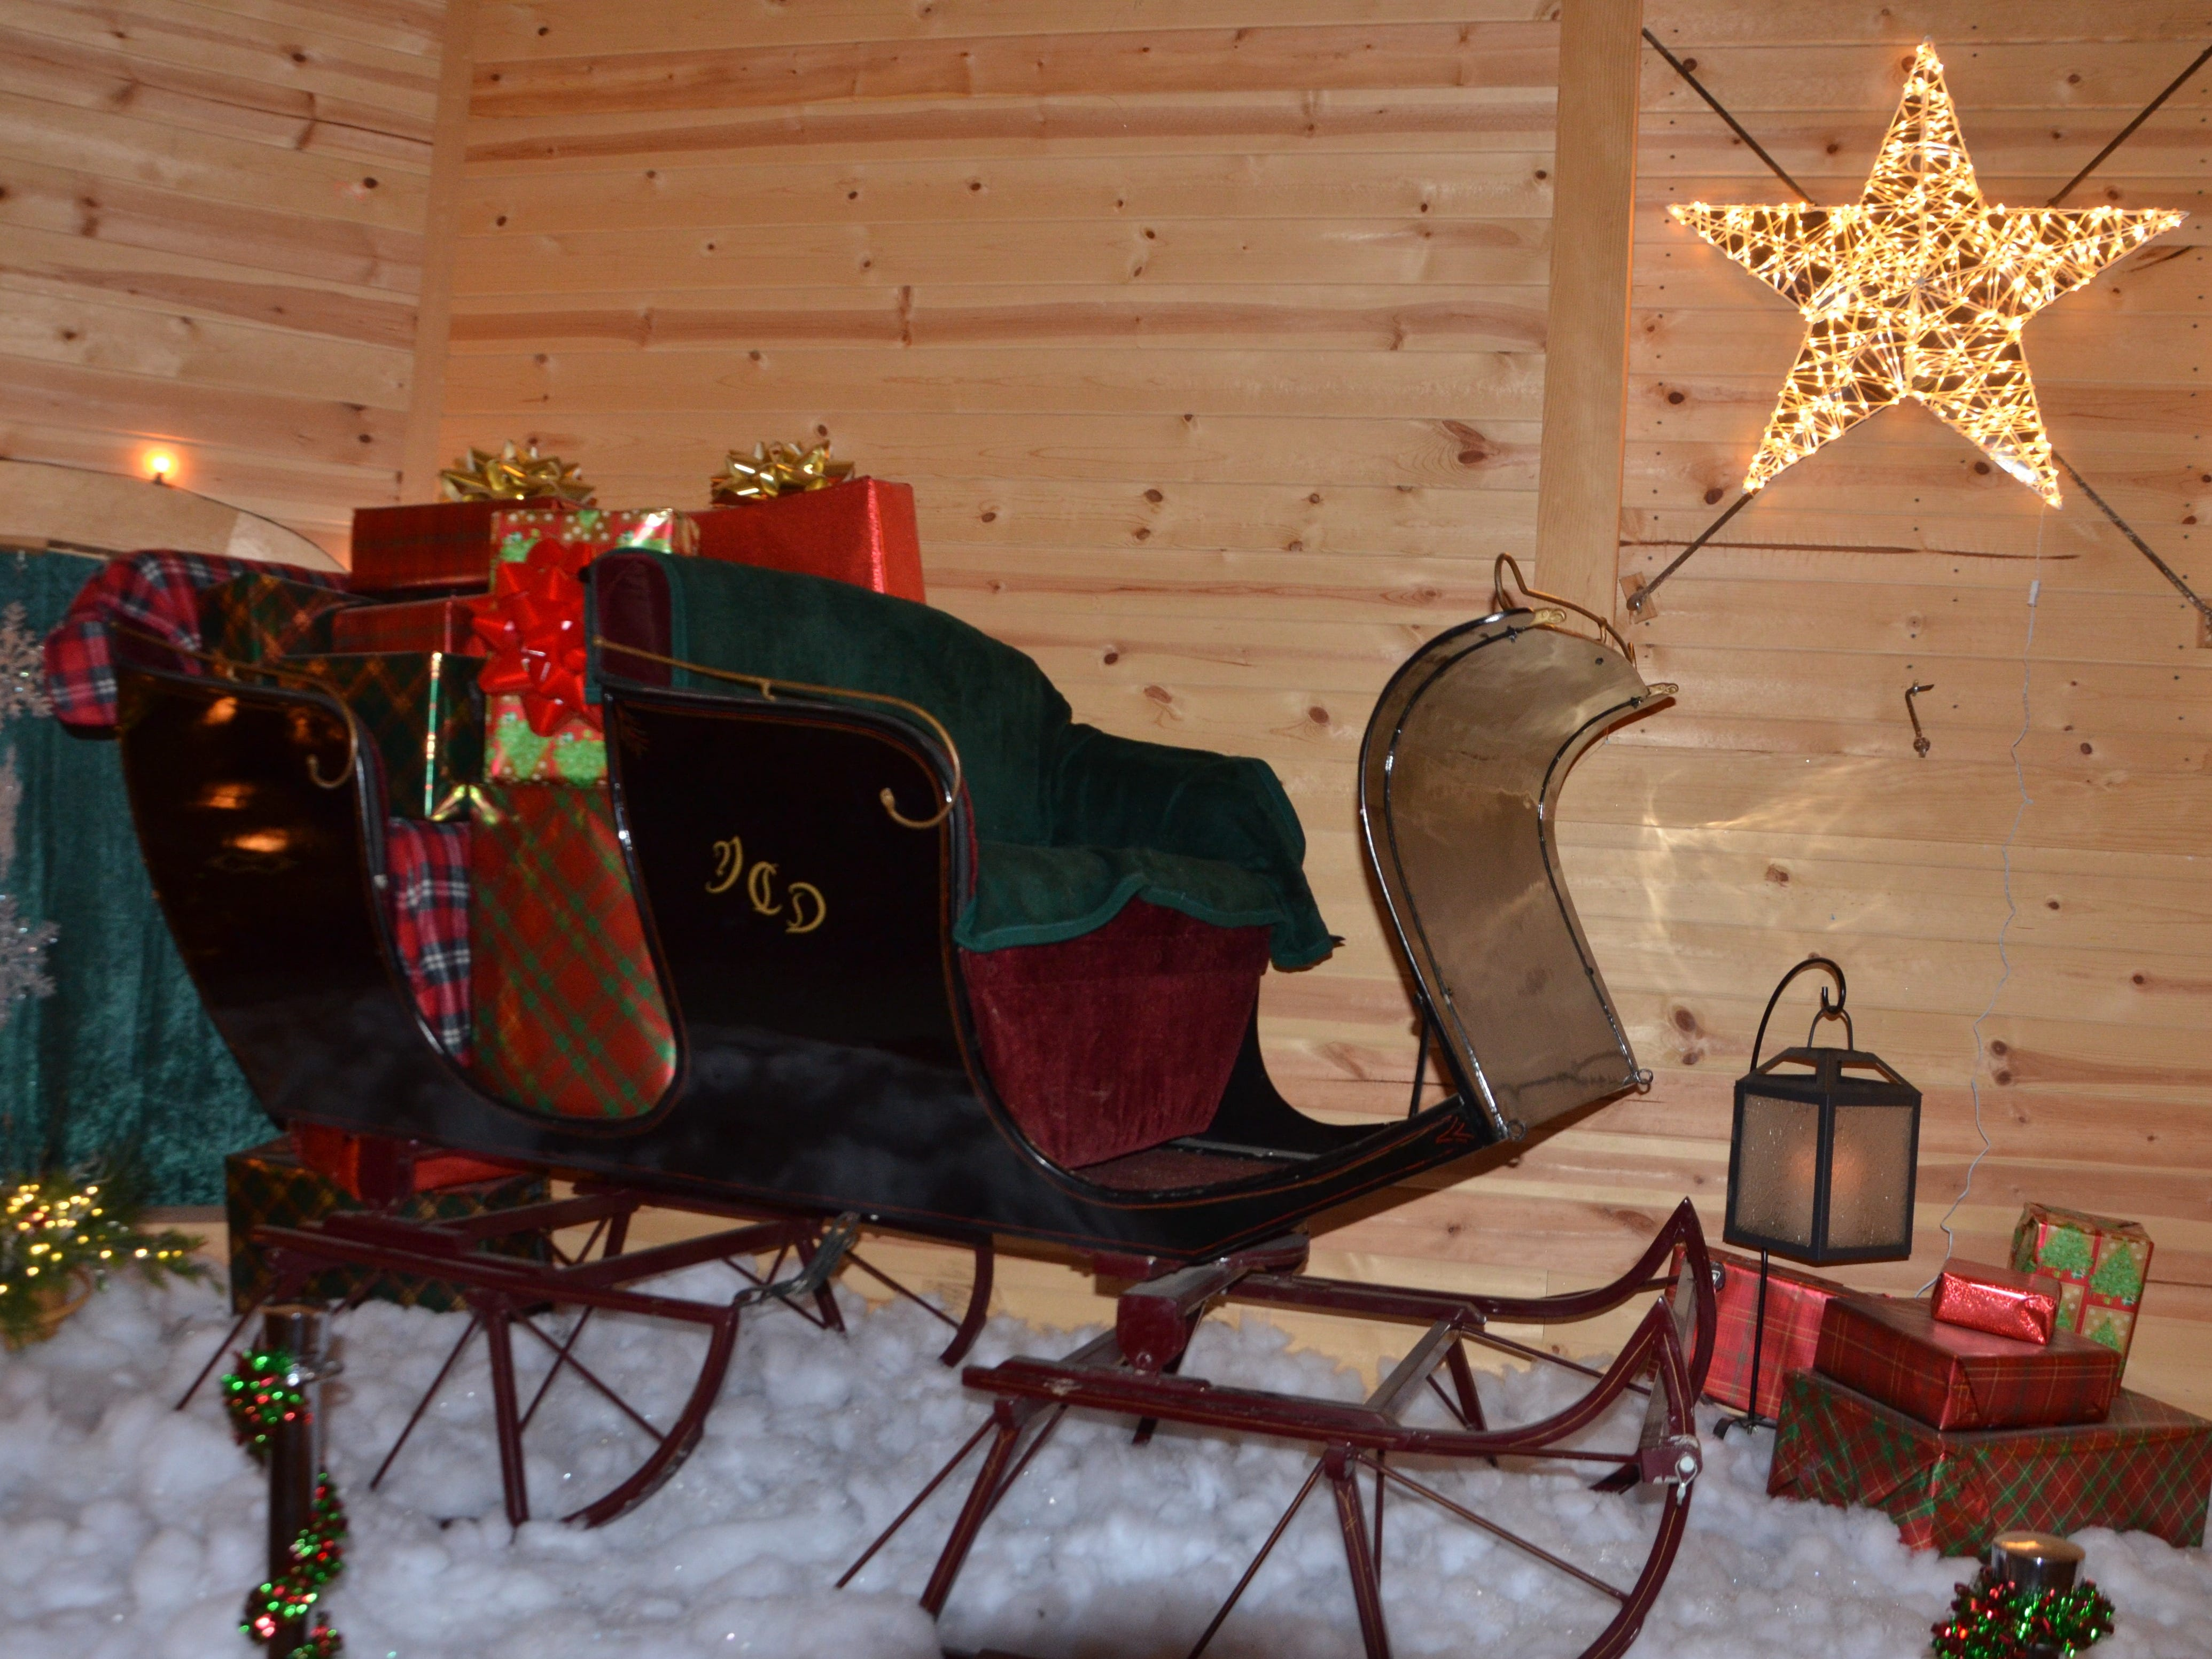 A vintage sleigh on display as part of the Merry Mile at the Calhoun County Fairgrounds in Marshall.